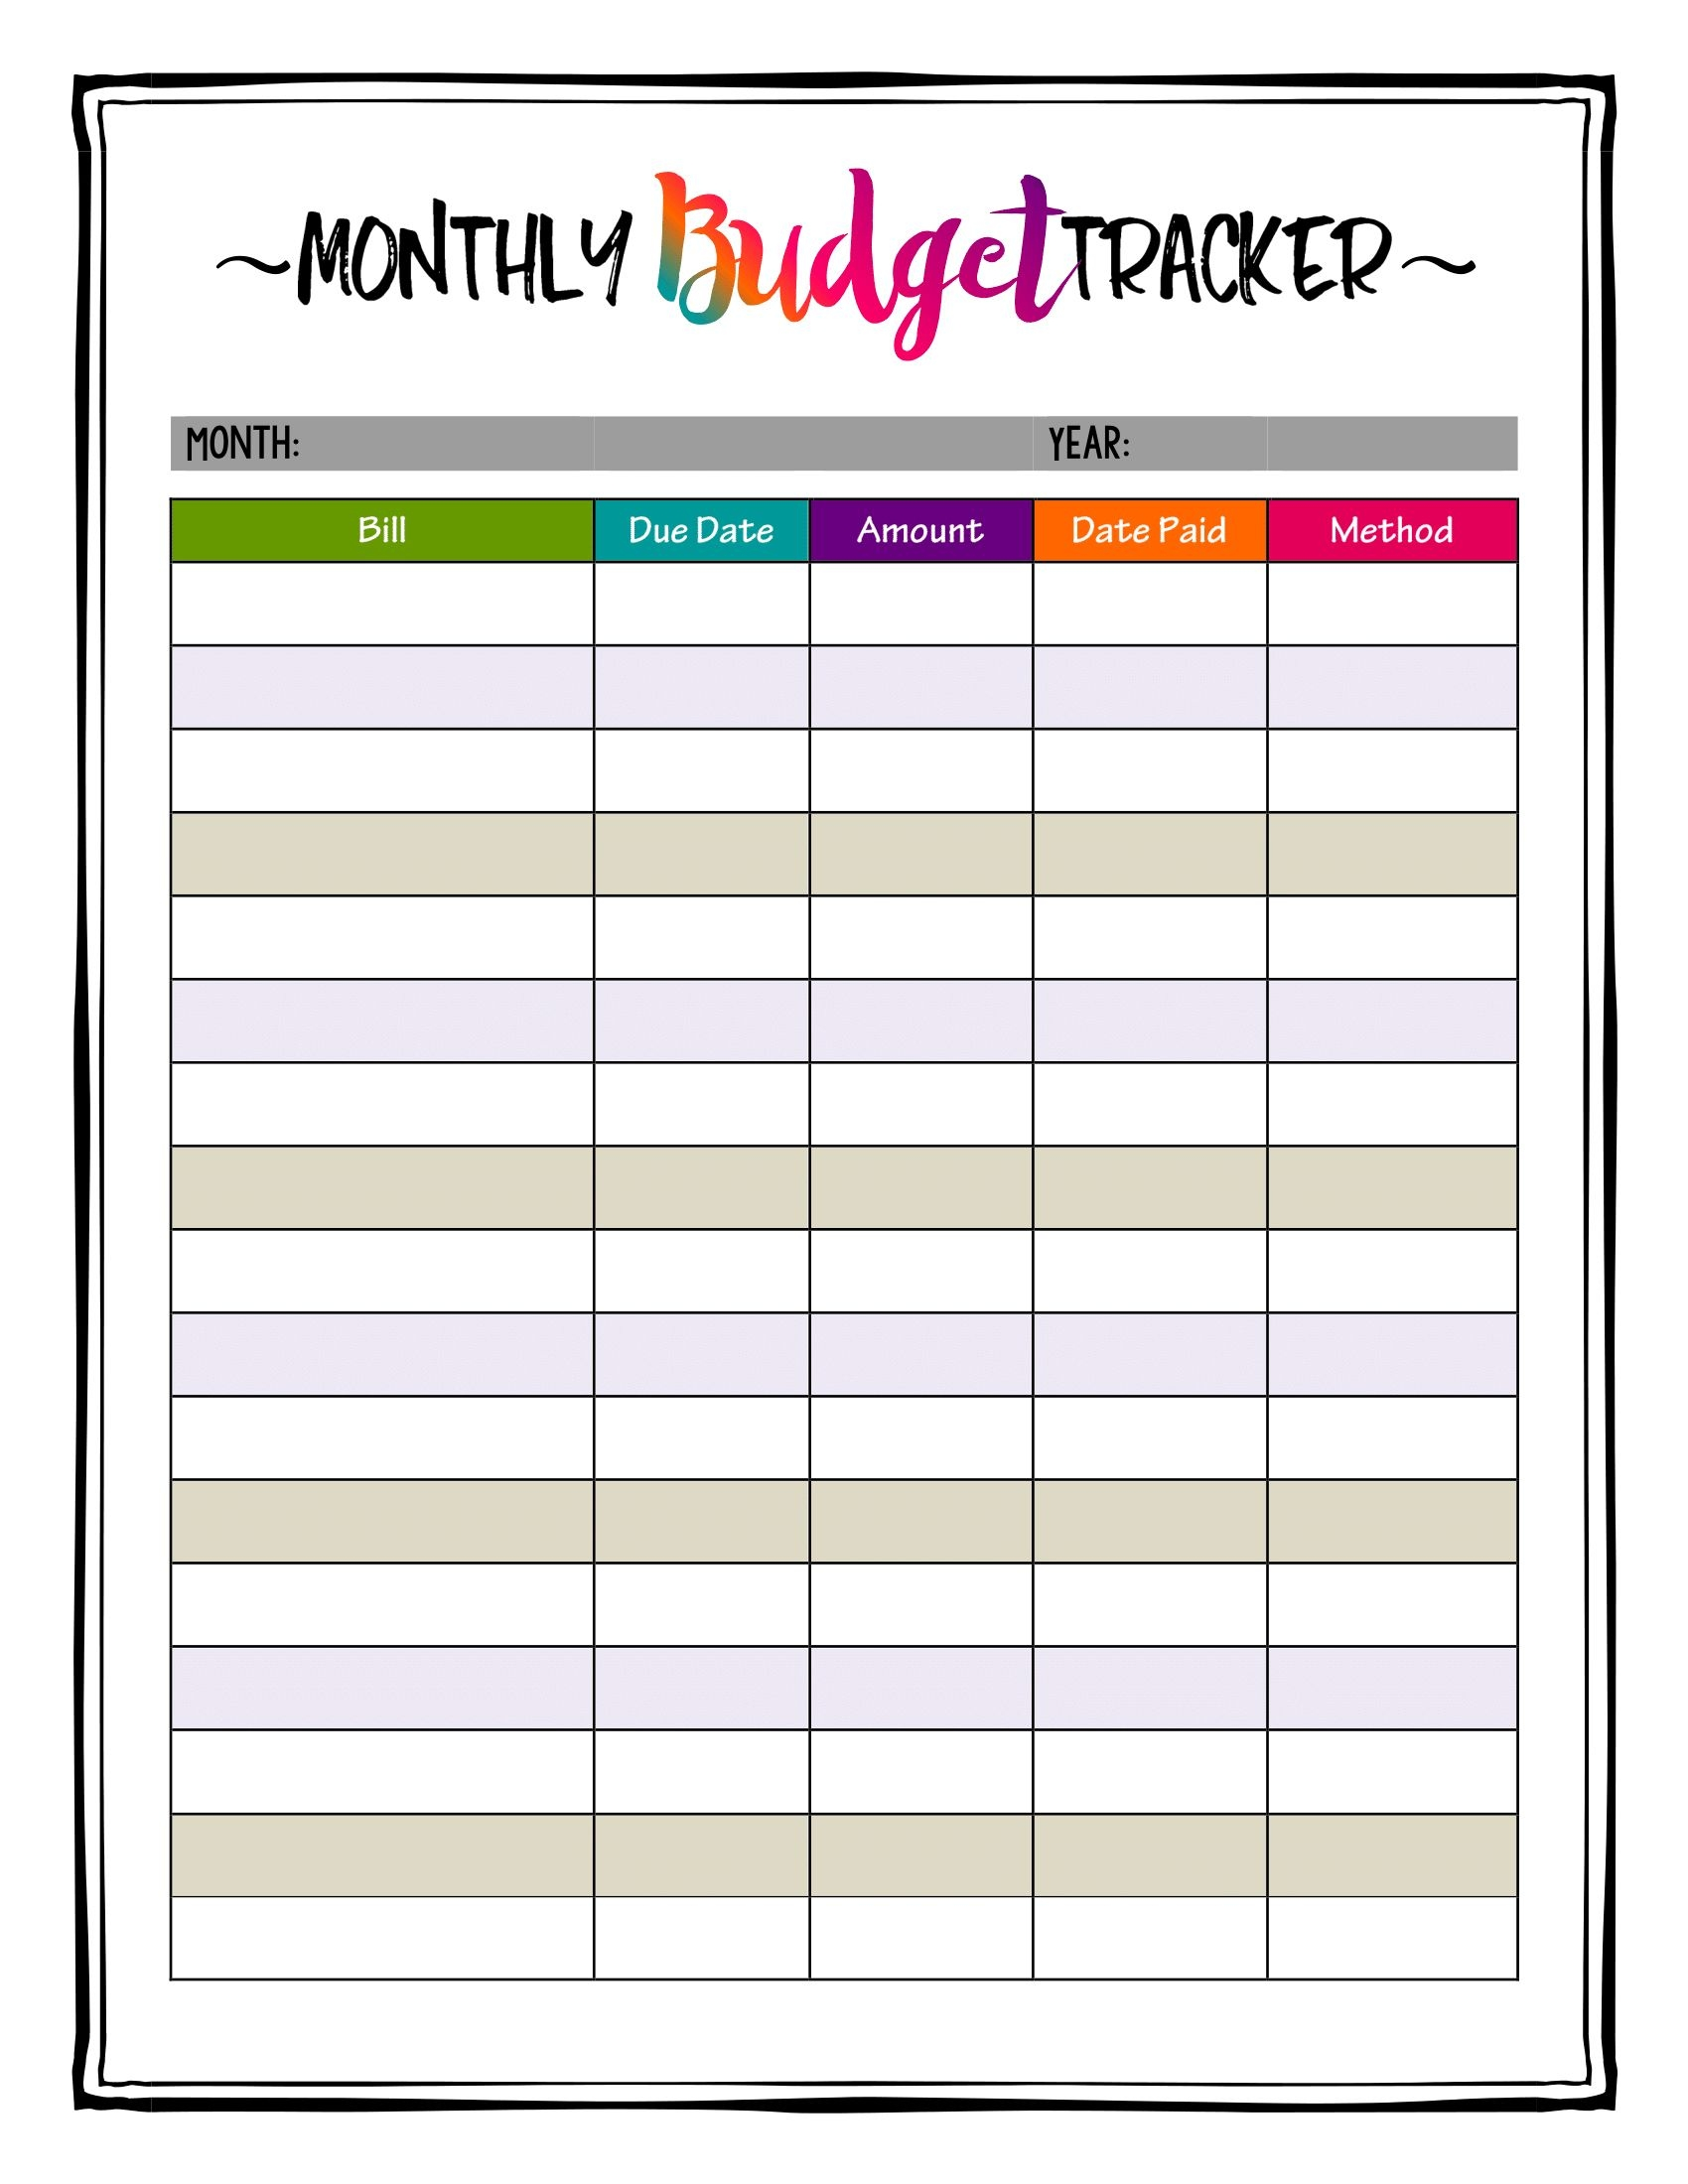 caribbean crazy color printable monthly budget planner bill   Monthly Bill Calendar For A Year erdferdf